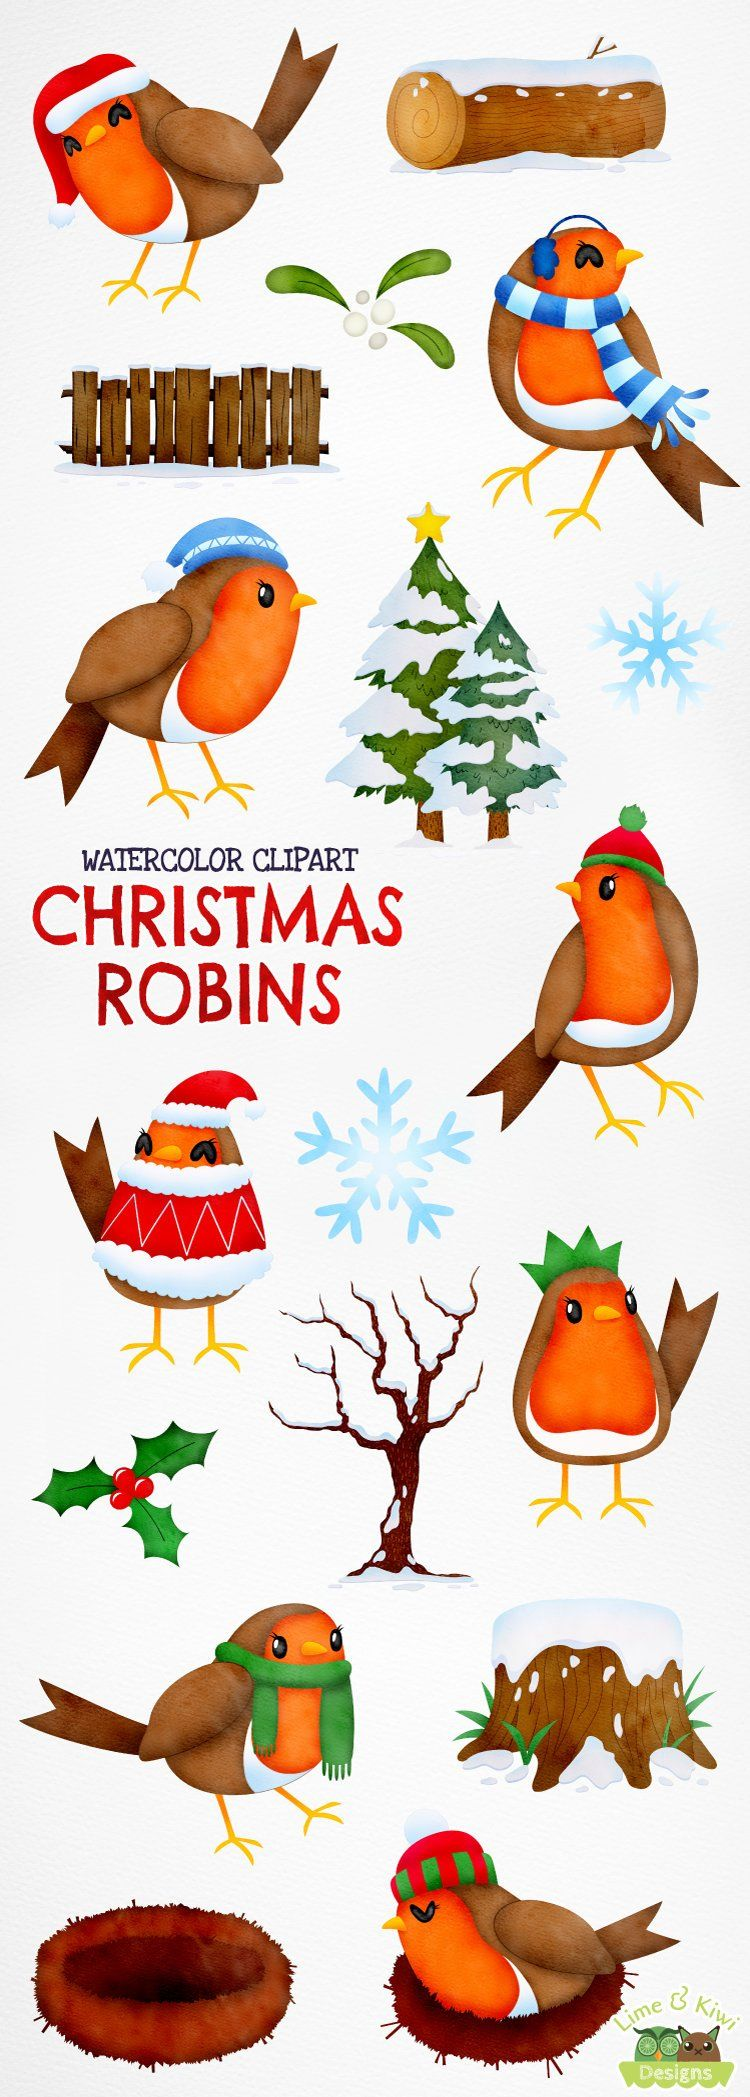 hight resolution of christmas robins watercolor clipart instant download vector etsy